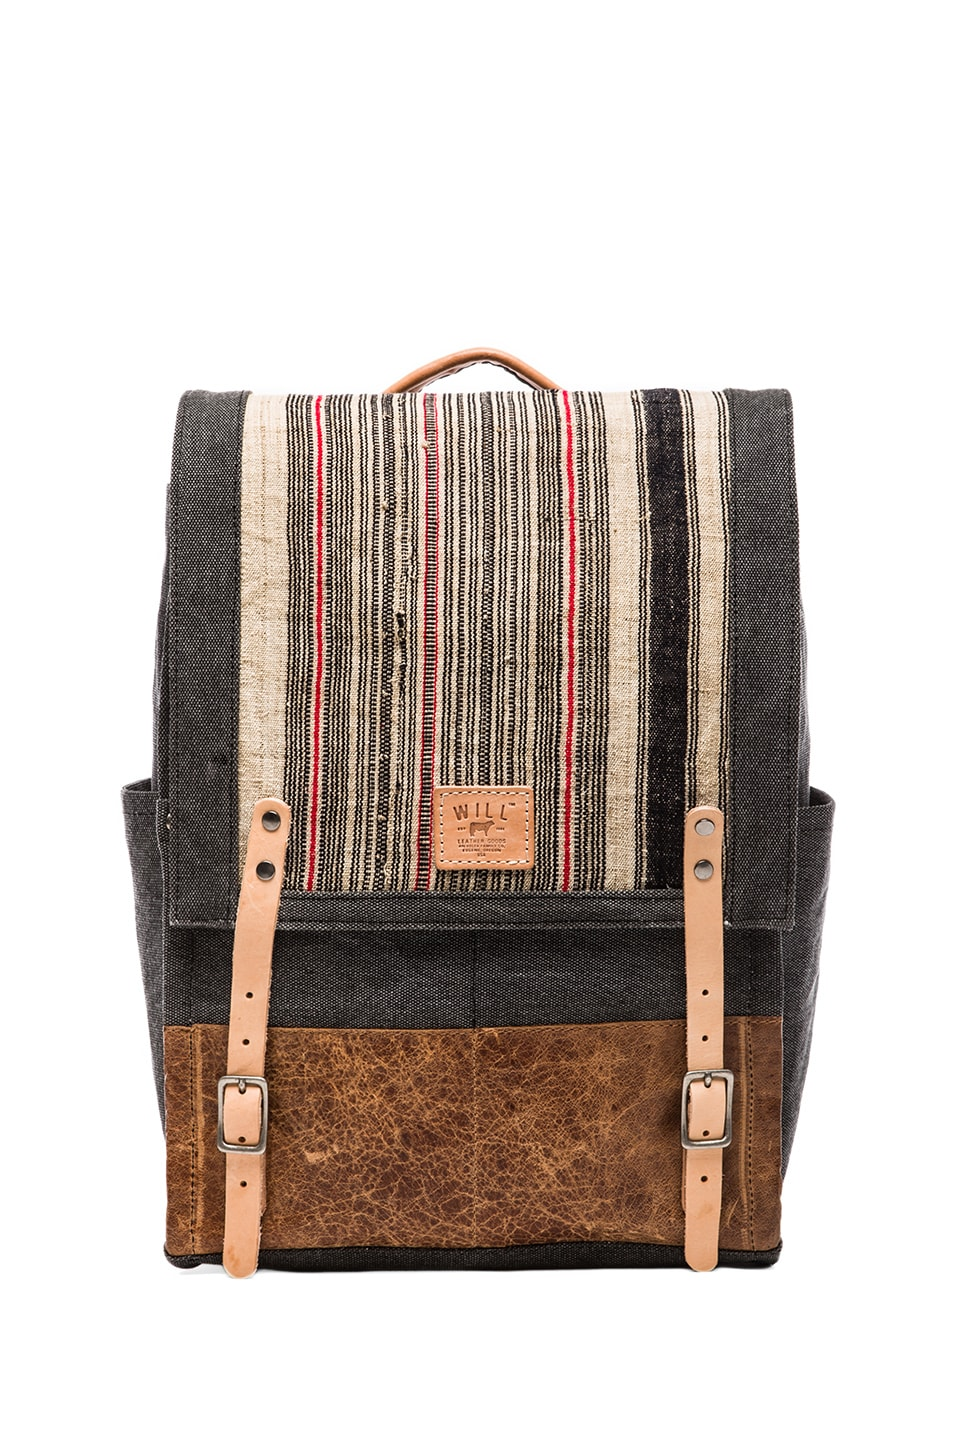 WILL Leather Goods Pha Sin Backpack in Black